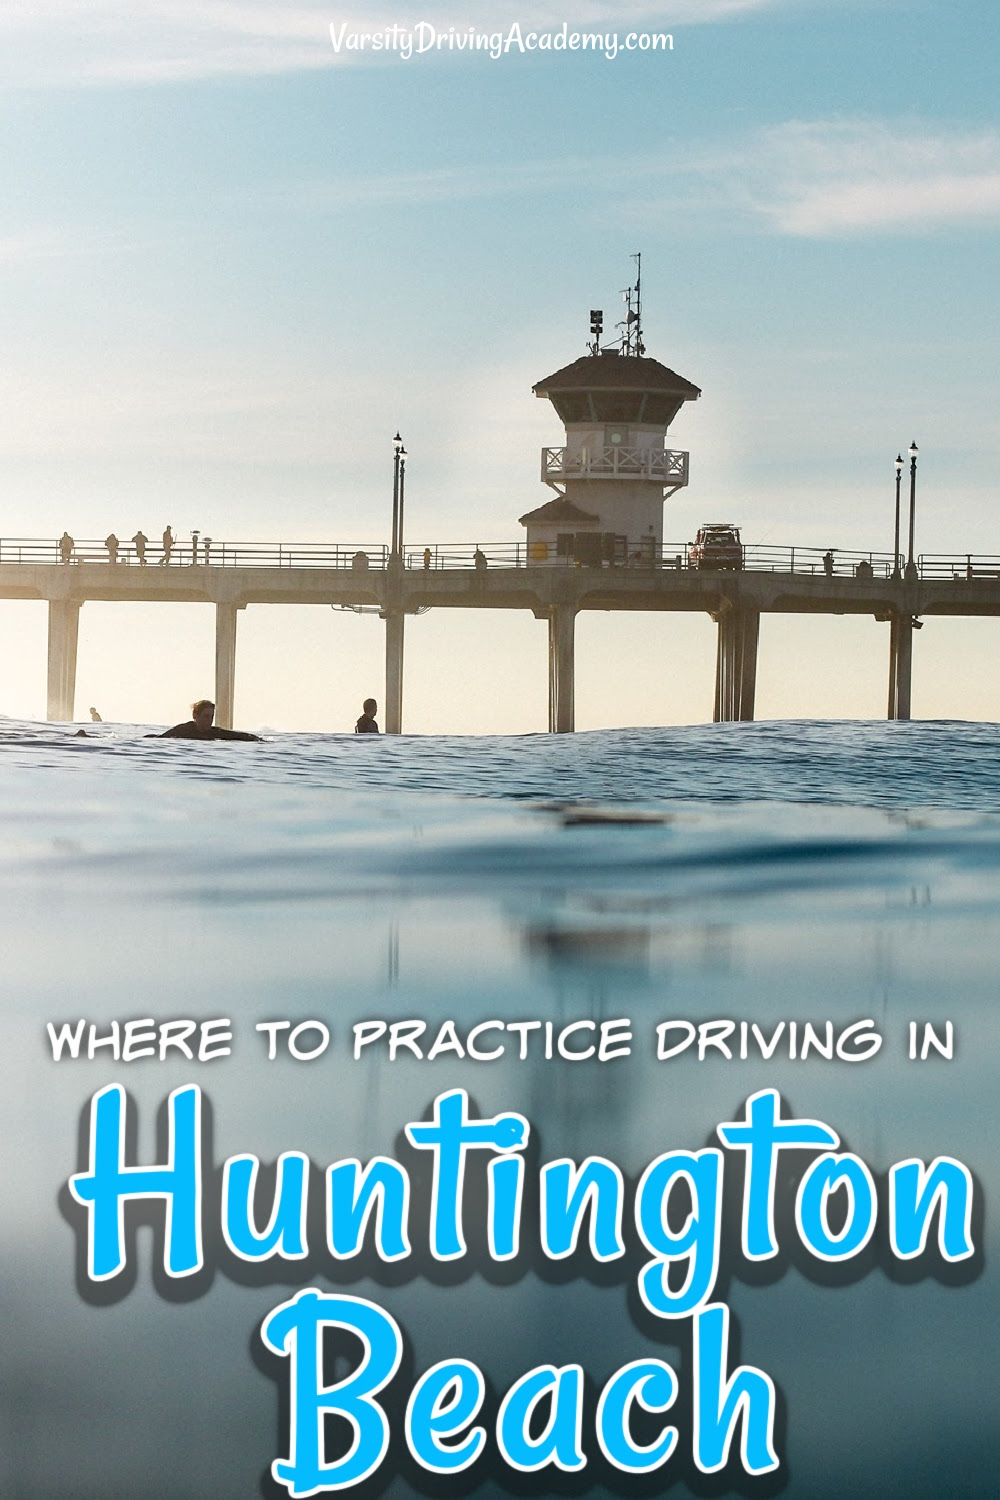 Knowing where to practice driving in Huntington Beach is a good way to make sure you improve your driving skills without much risk.